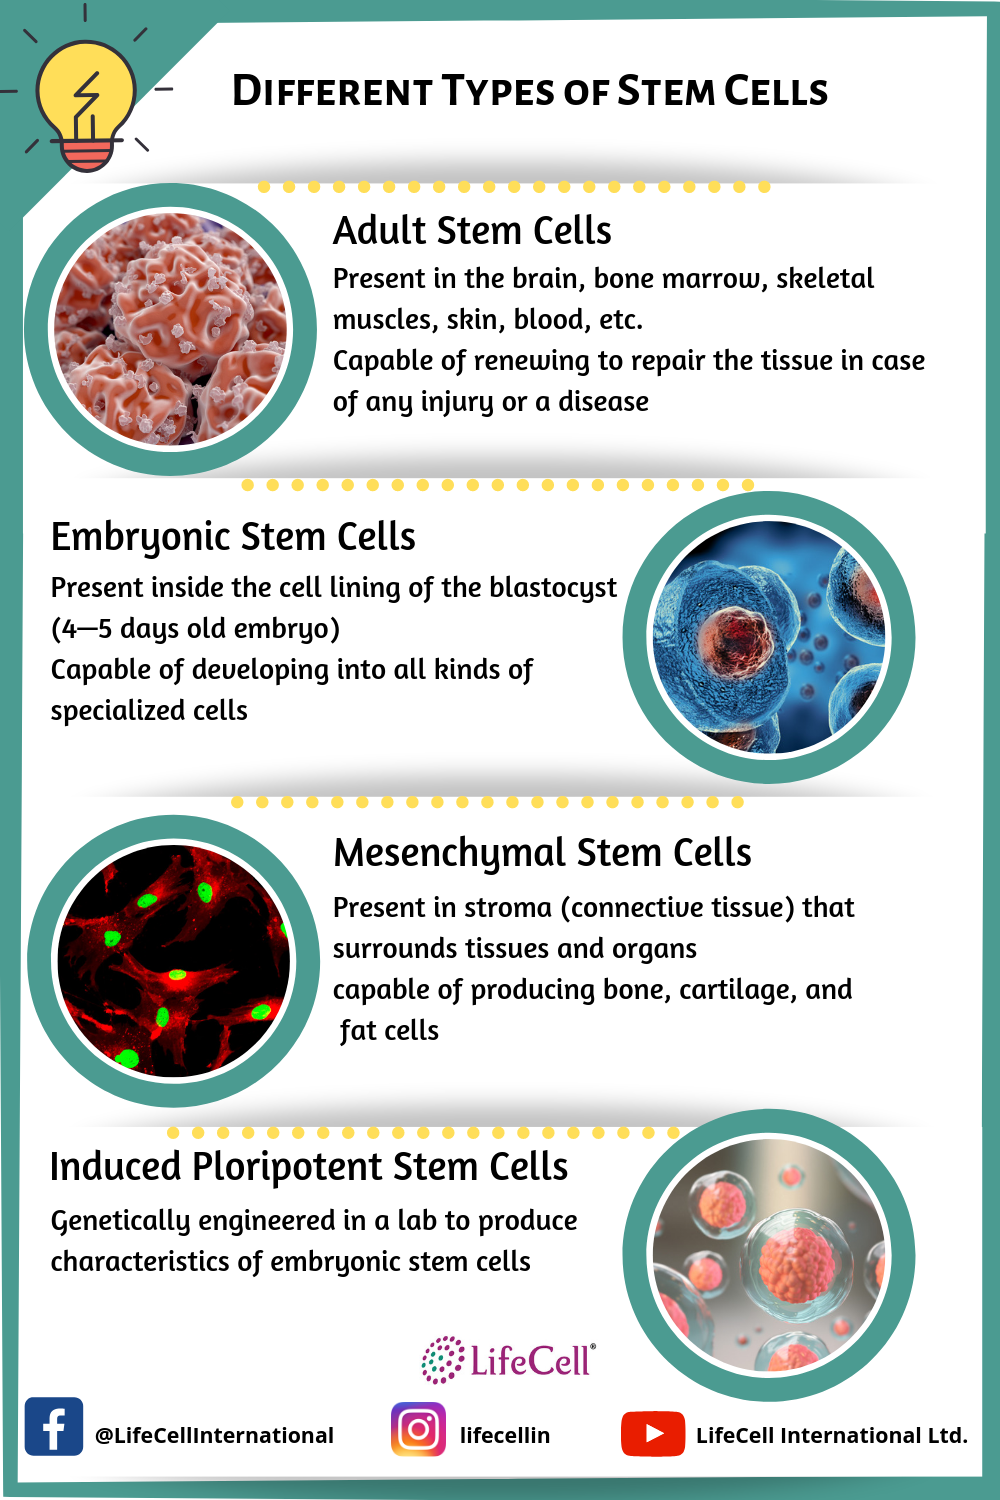 Different sources of stem cells